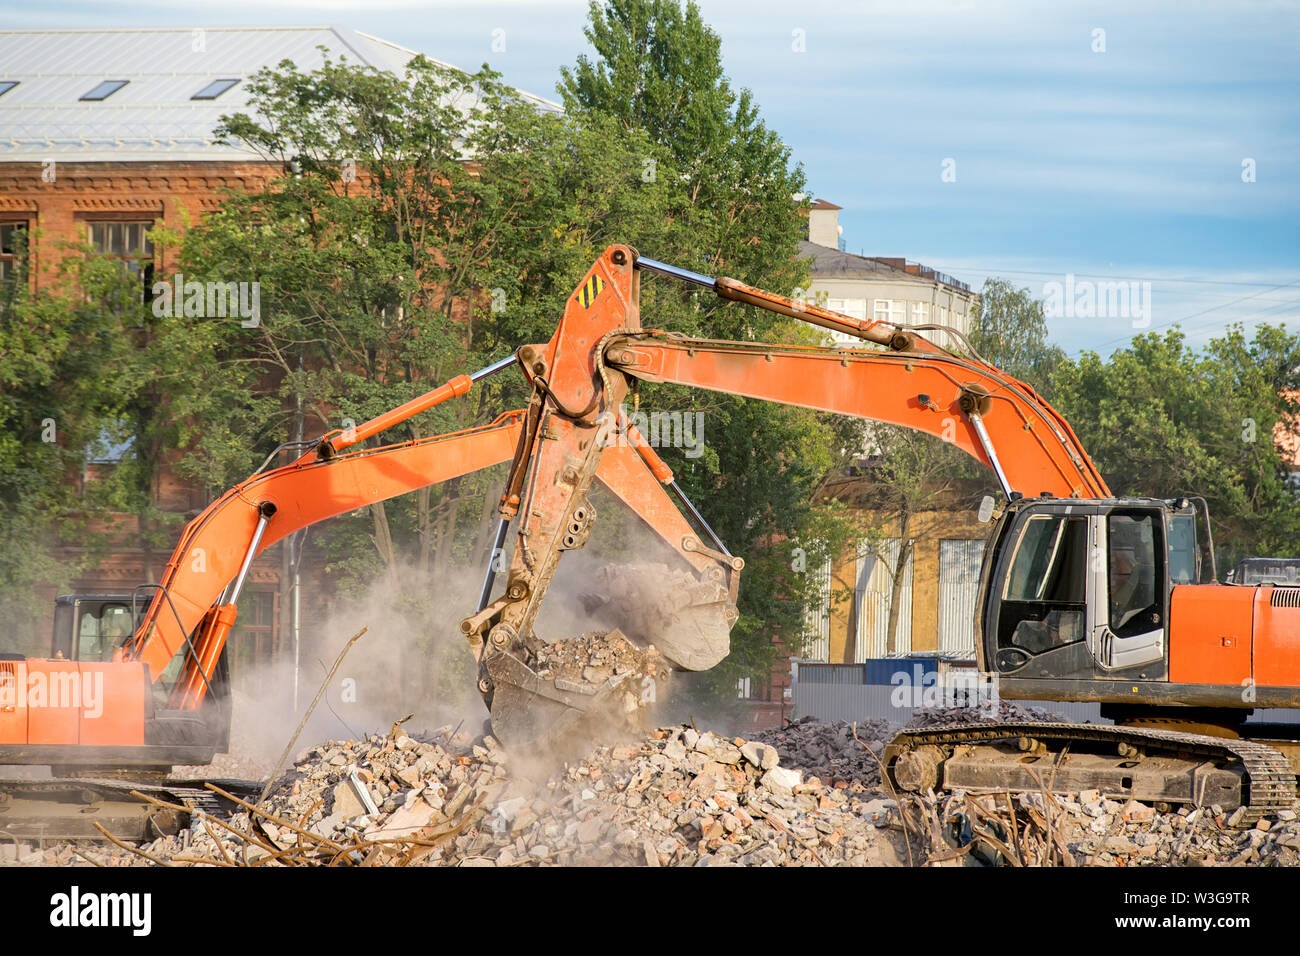 Two orange excavators working on the debris of a demolished building. Cleaning the rubble, building demolition and clearing site theme image - Stock Image